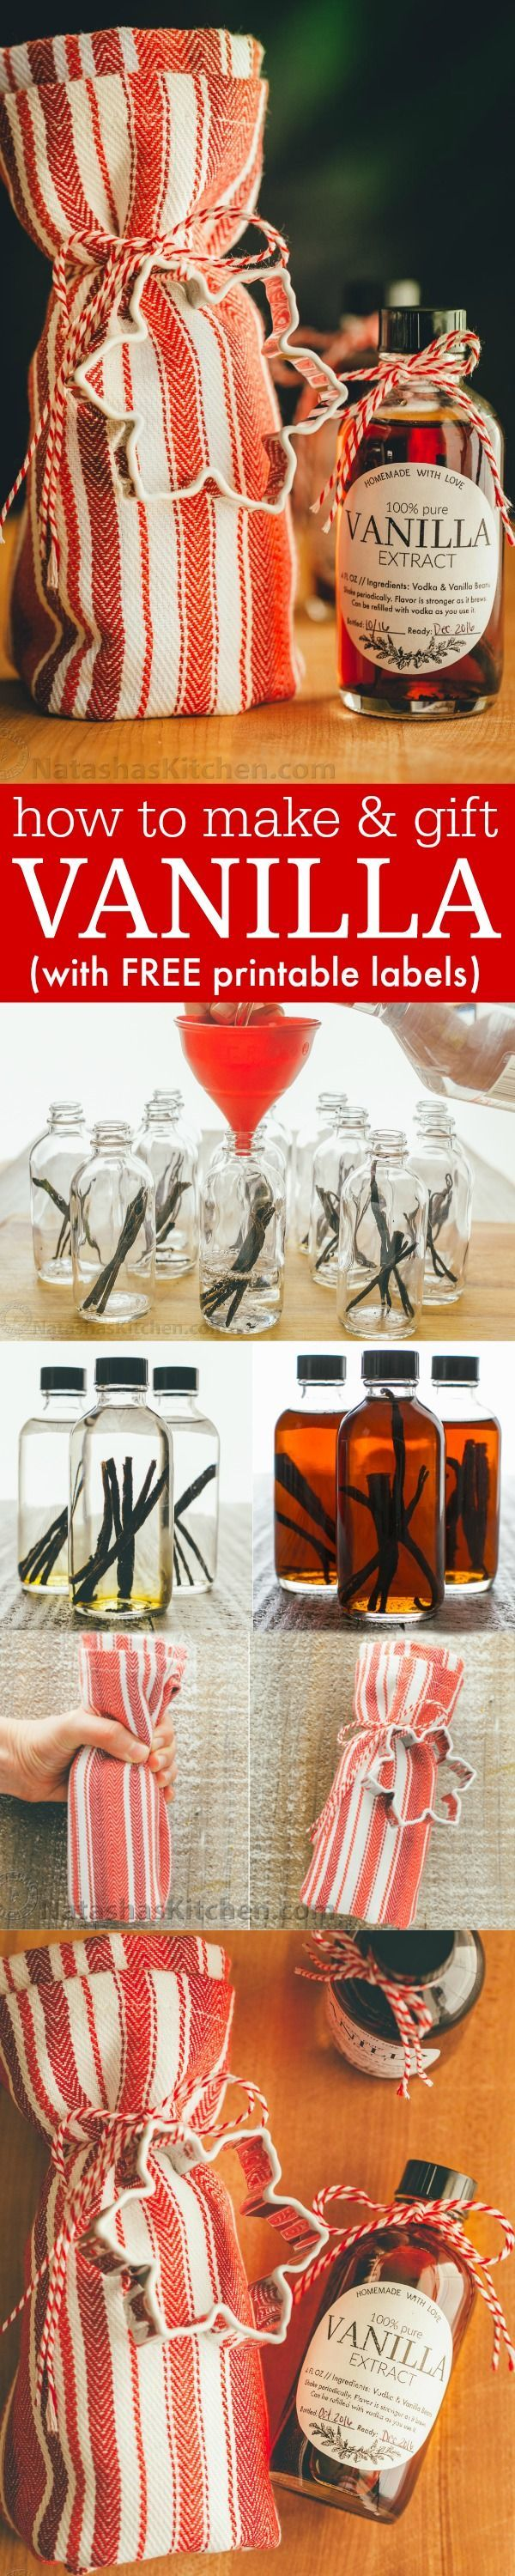 HOLIDAY BOARD: Vanilla Extract Recipe - How to Make Vanilla Extra...